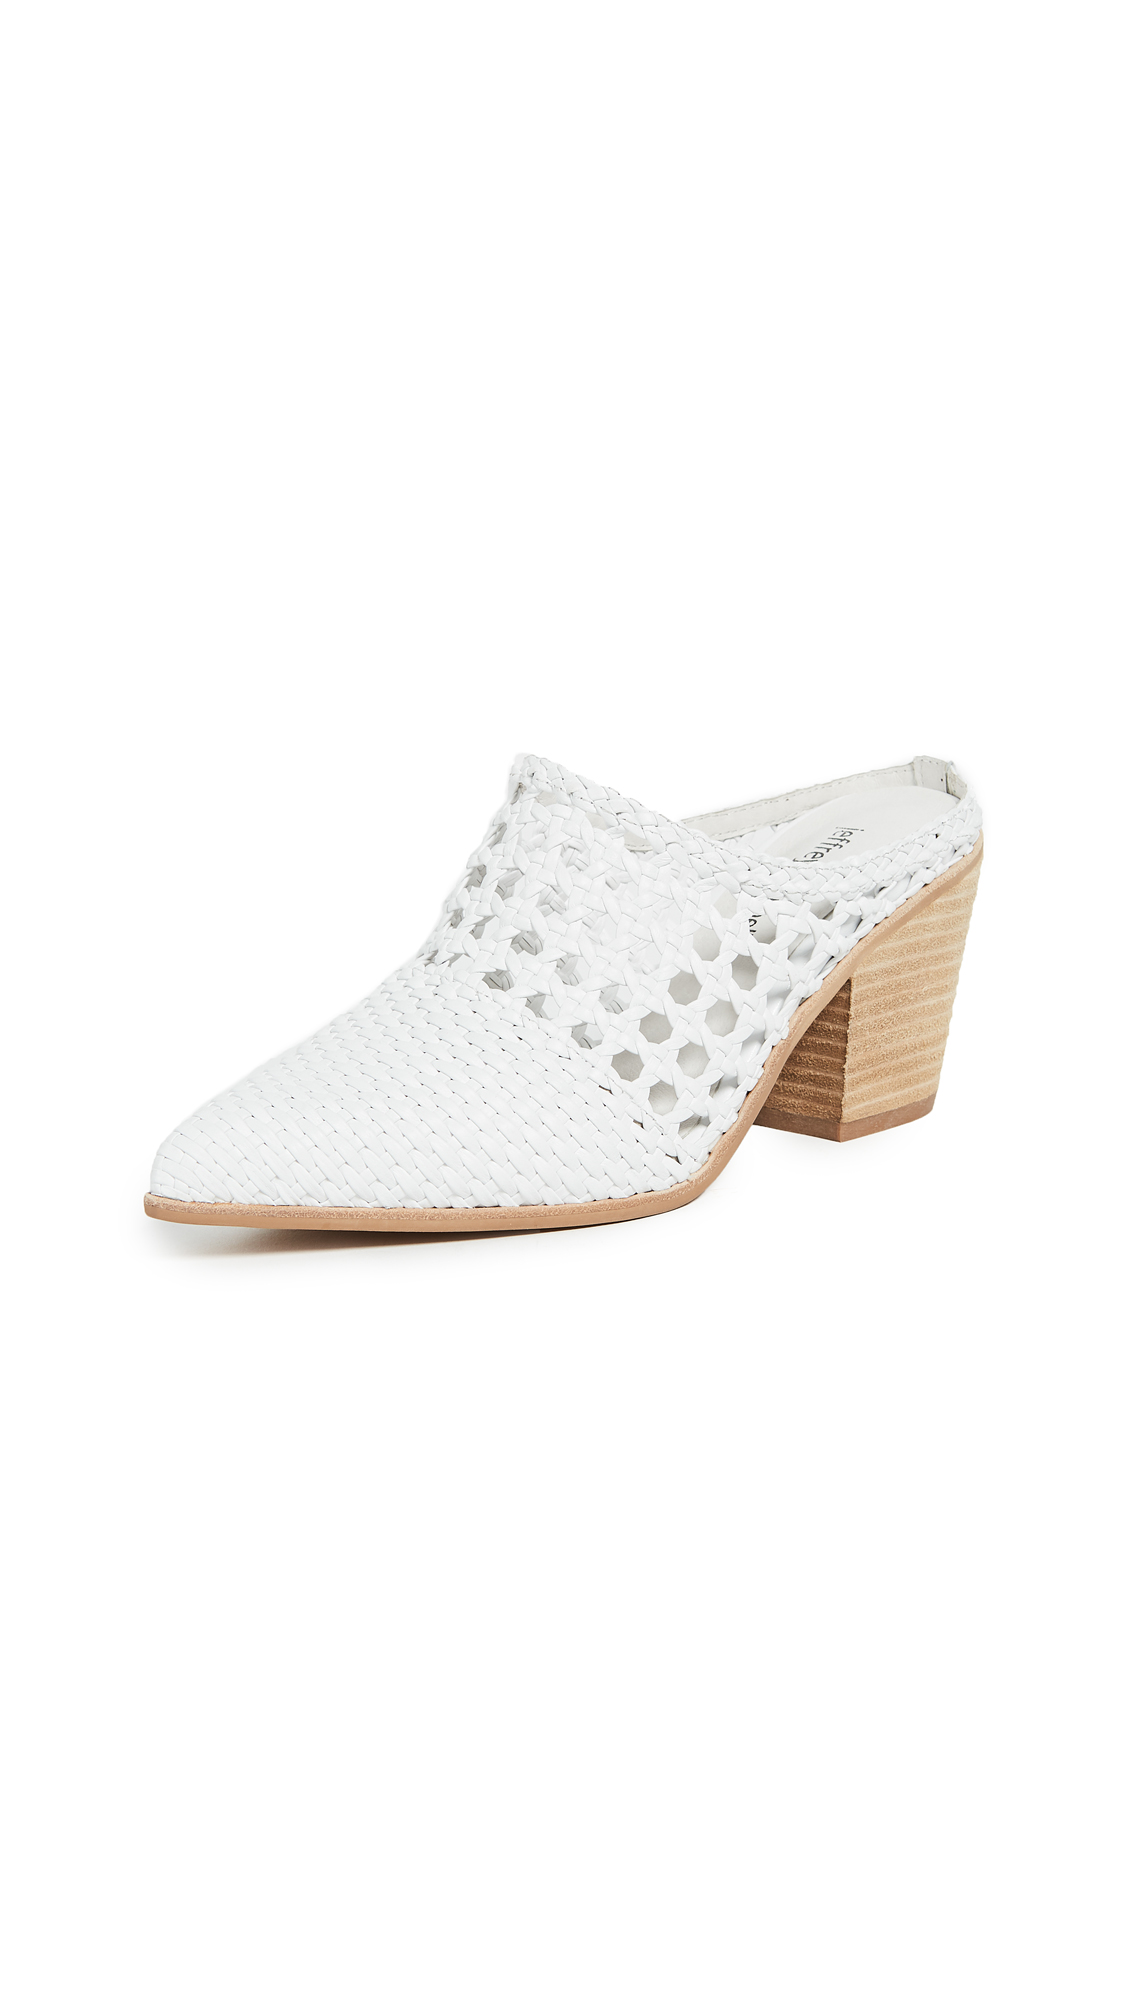 Jeffrey Campbell Leone Woven Mules - White/Natural